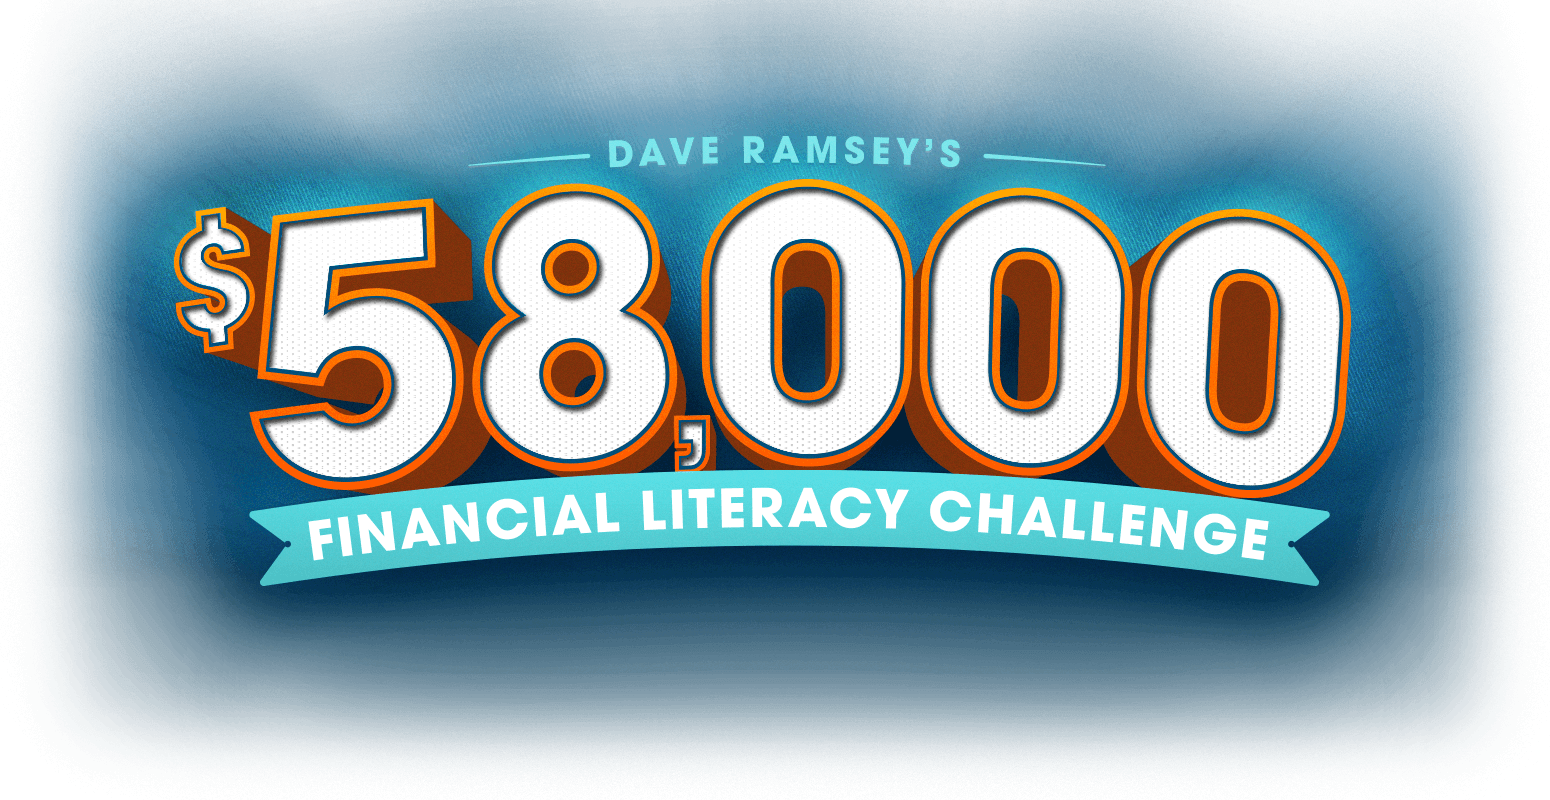 Dave Ramsey's $58,000 Financial Literacy Challenge